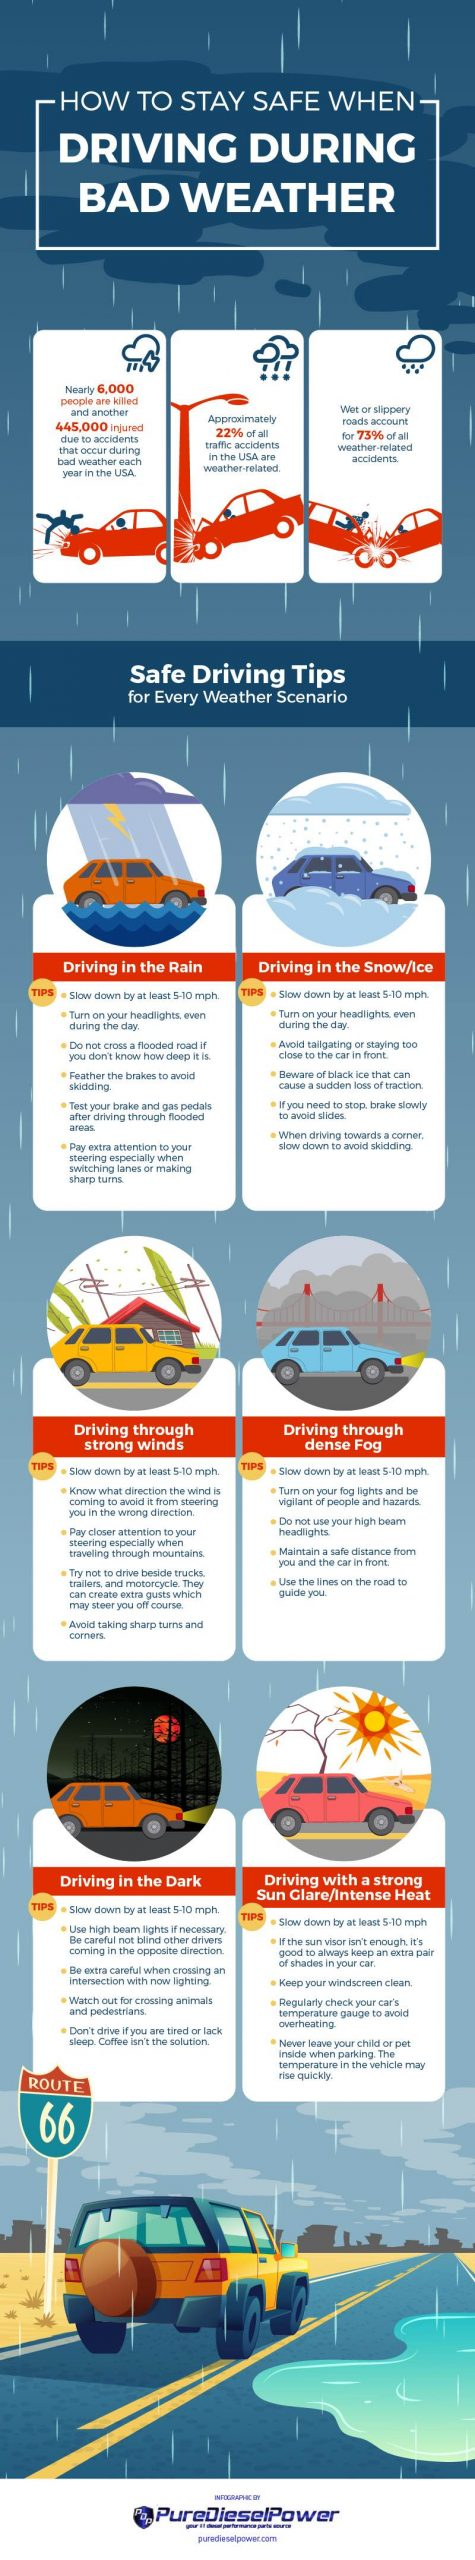 How to Stay Safe When Driving a Rental Car During Bad Weather-Infographic